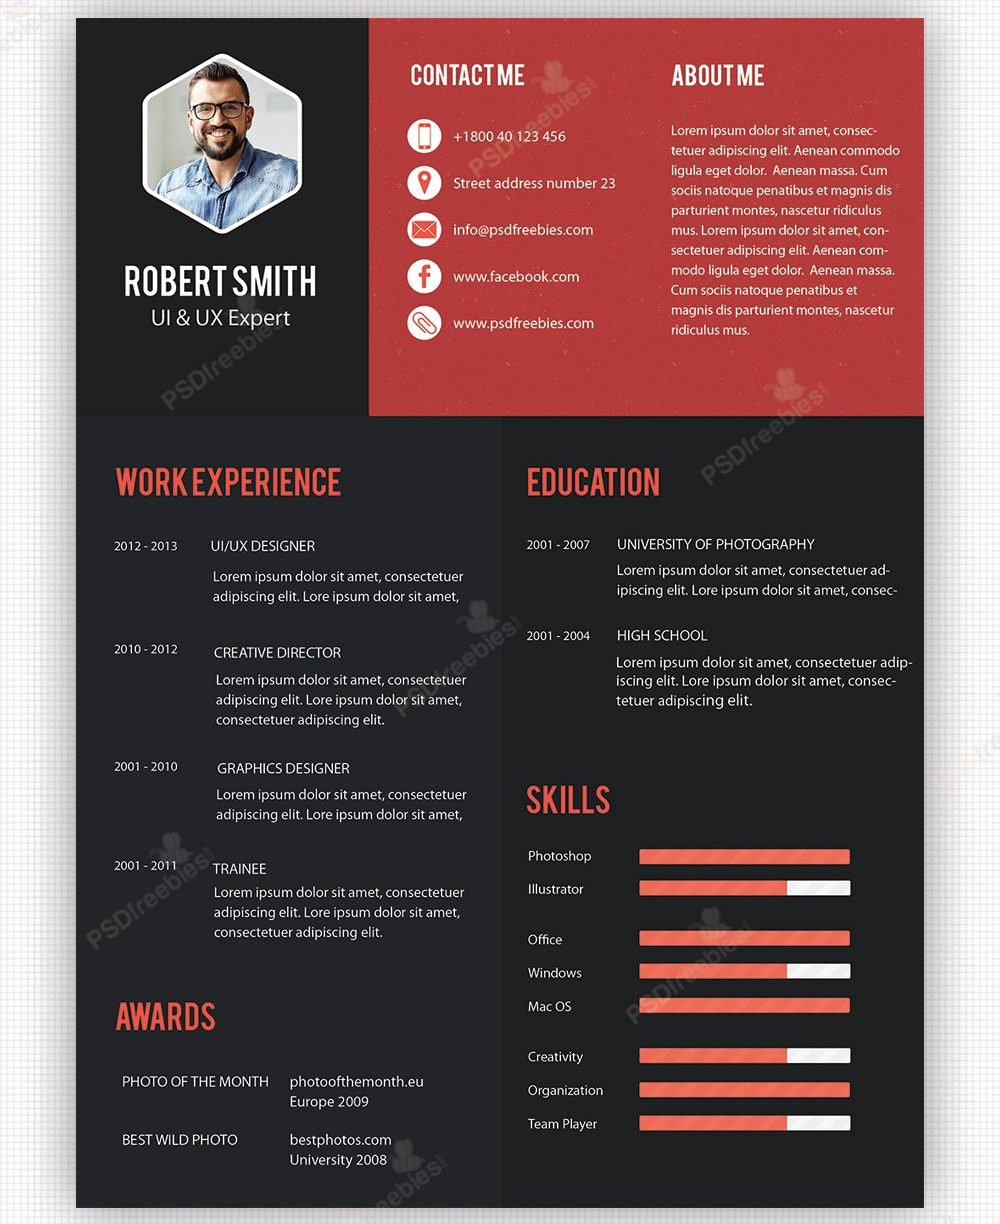 Free Graphic Design Template Luxury Graphic Designer Resume Template Cv Psd Freenload Indesign